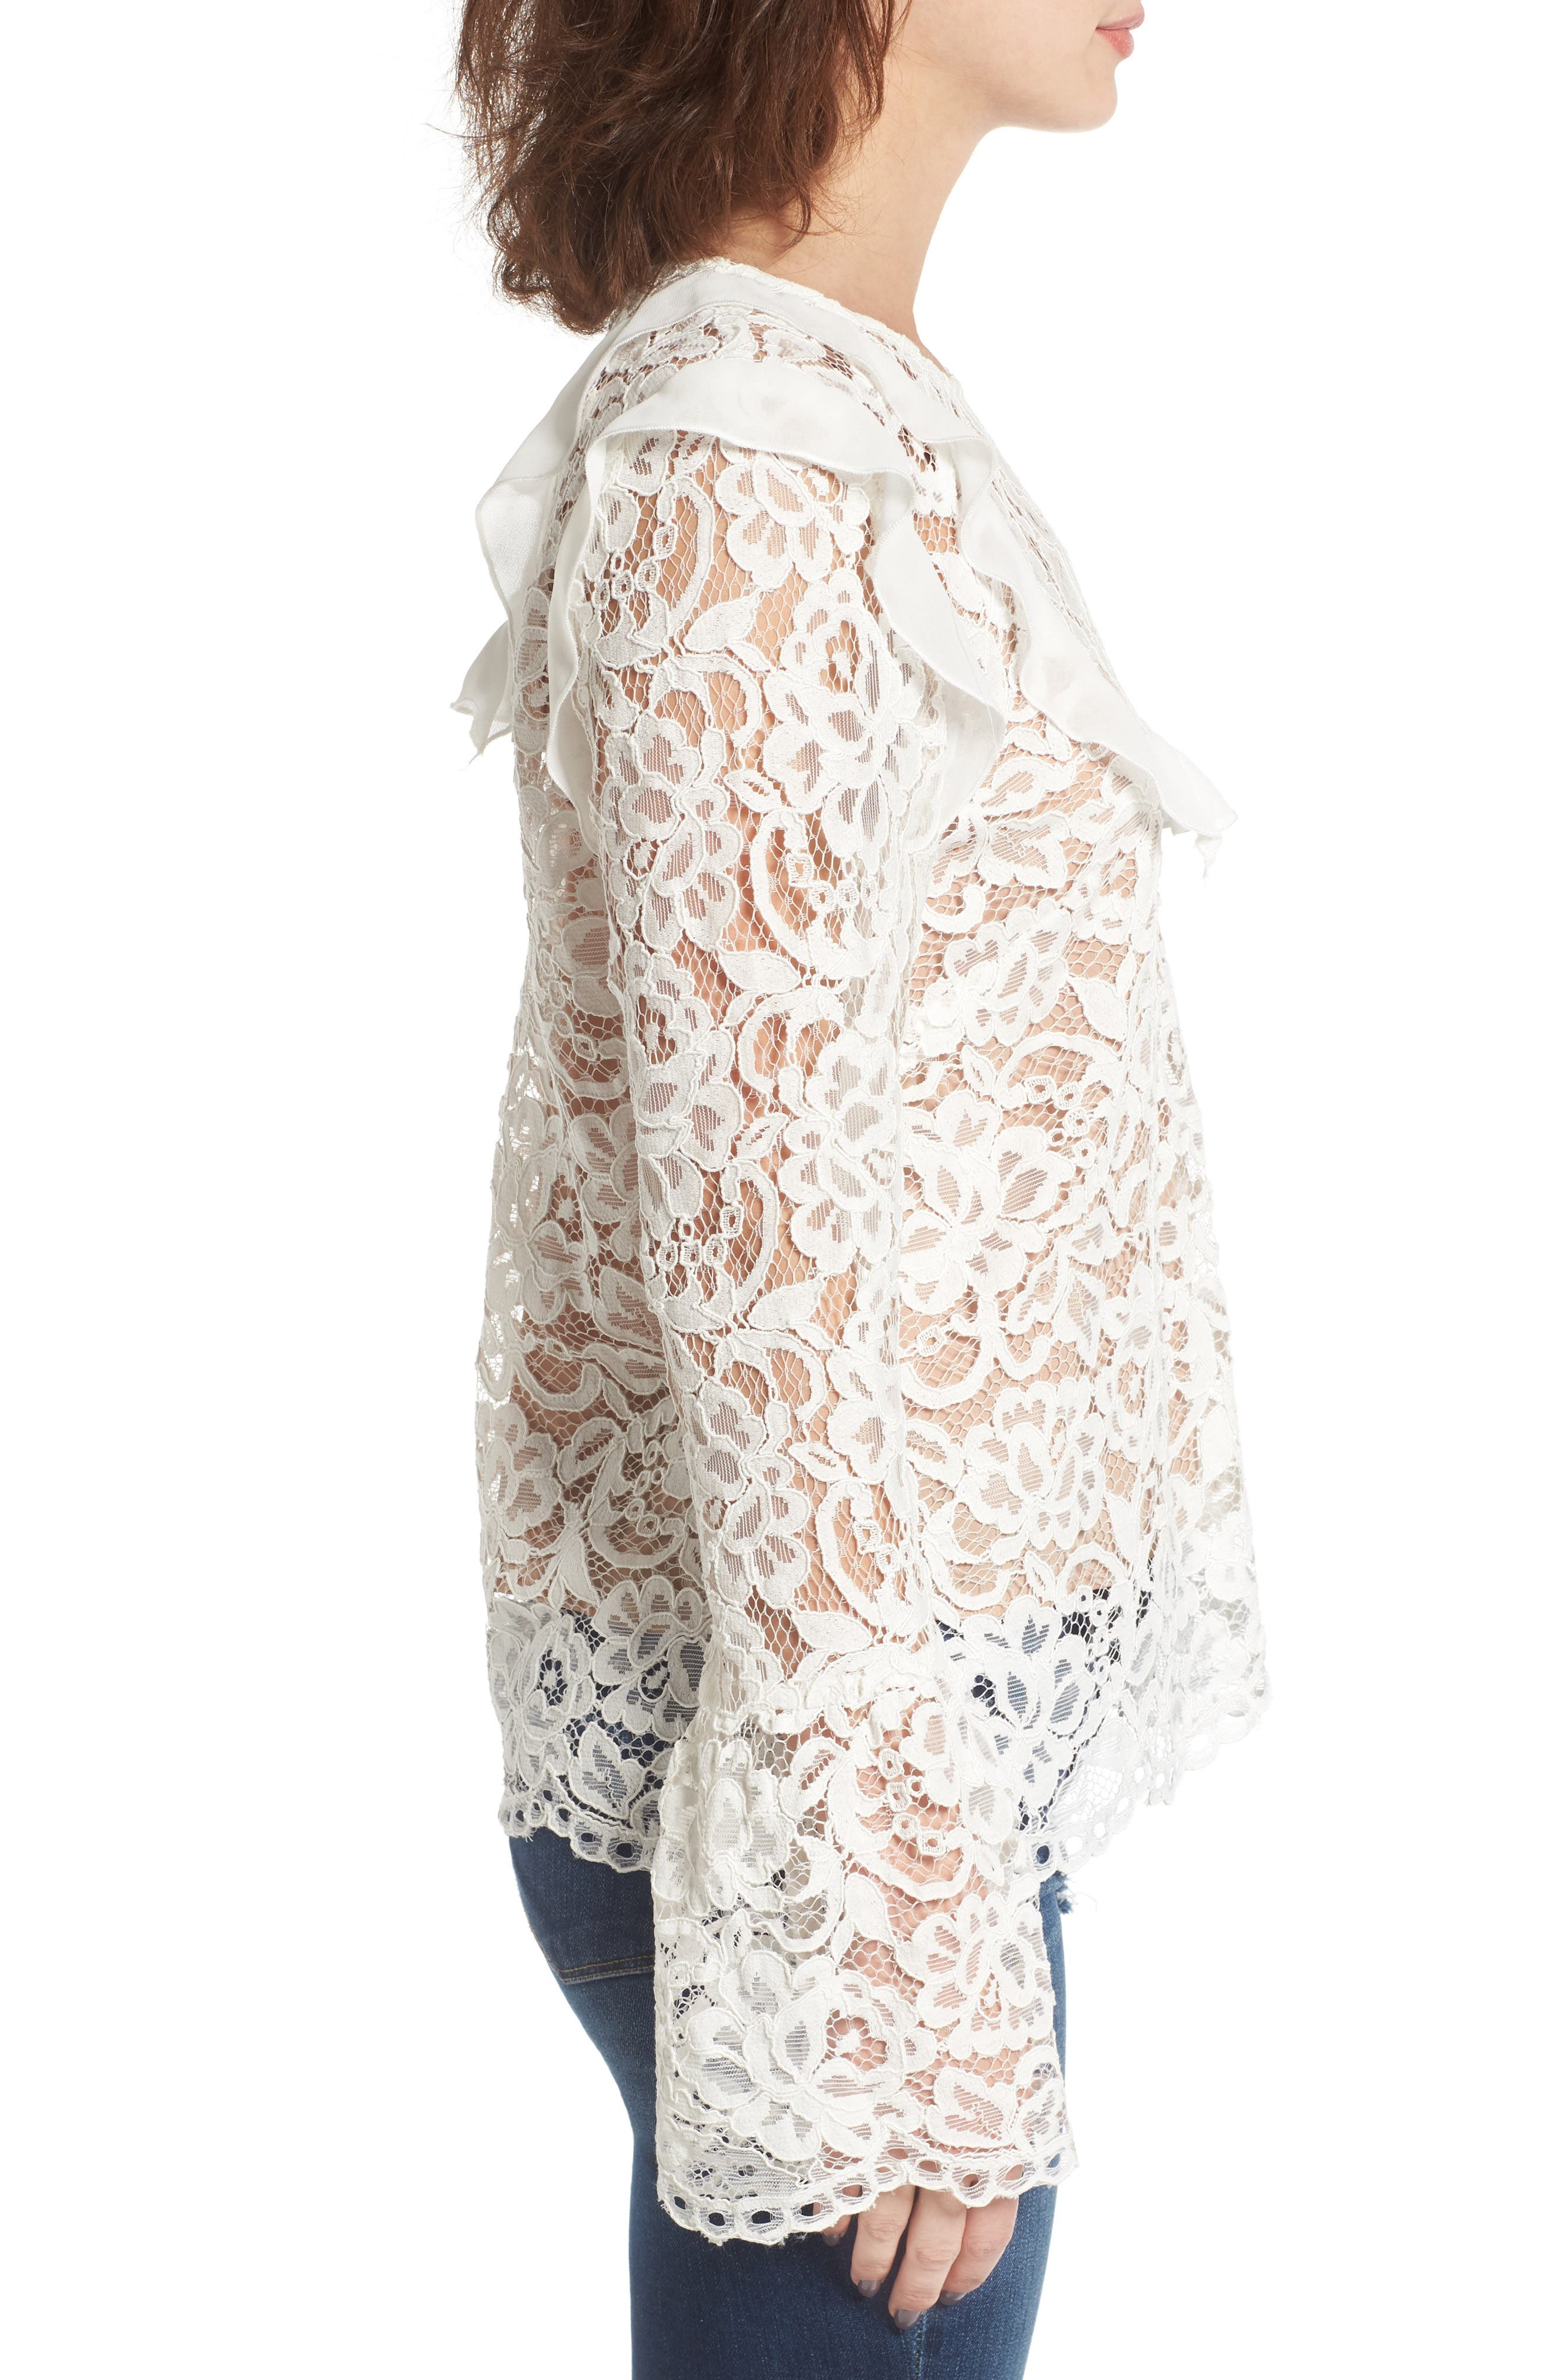 Lydia Lace Top,                             Alternate thumbnail 3, color,                             Ivory Lace